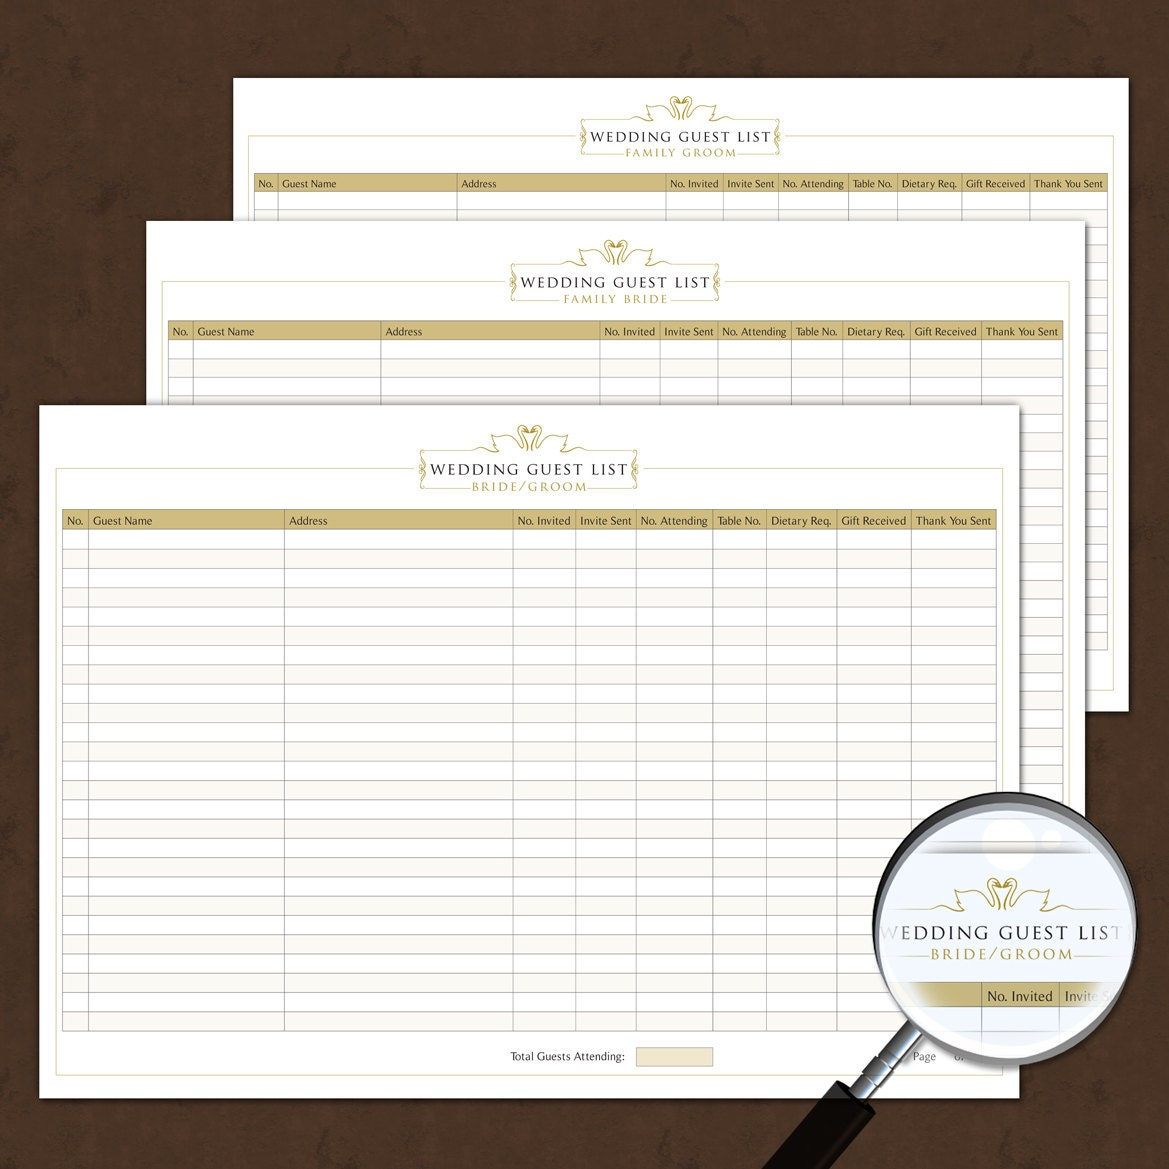 wedding guest list template interactive printable by michelleyoh. Black Bedroom Furniture Sets. Home Design Ideas